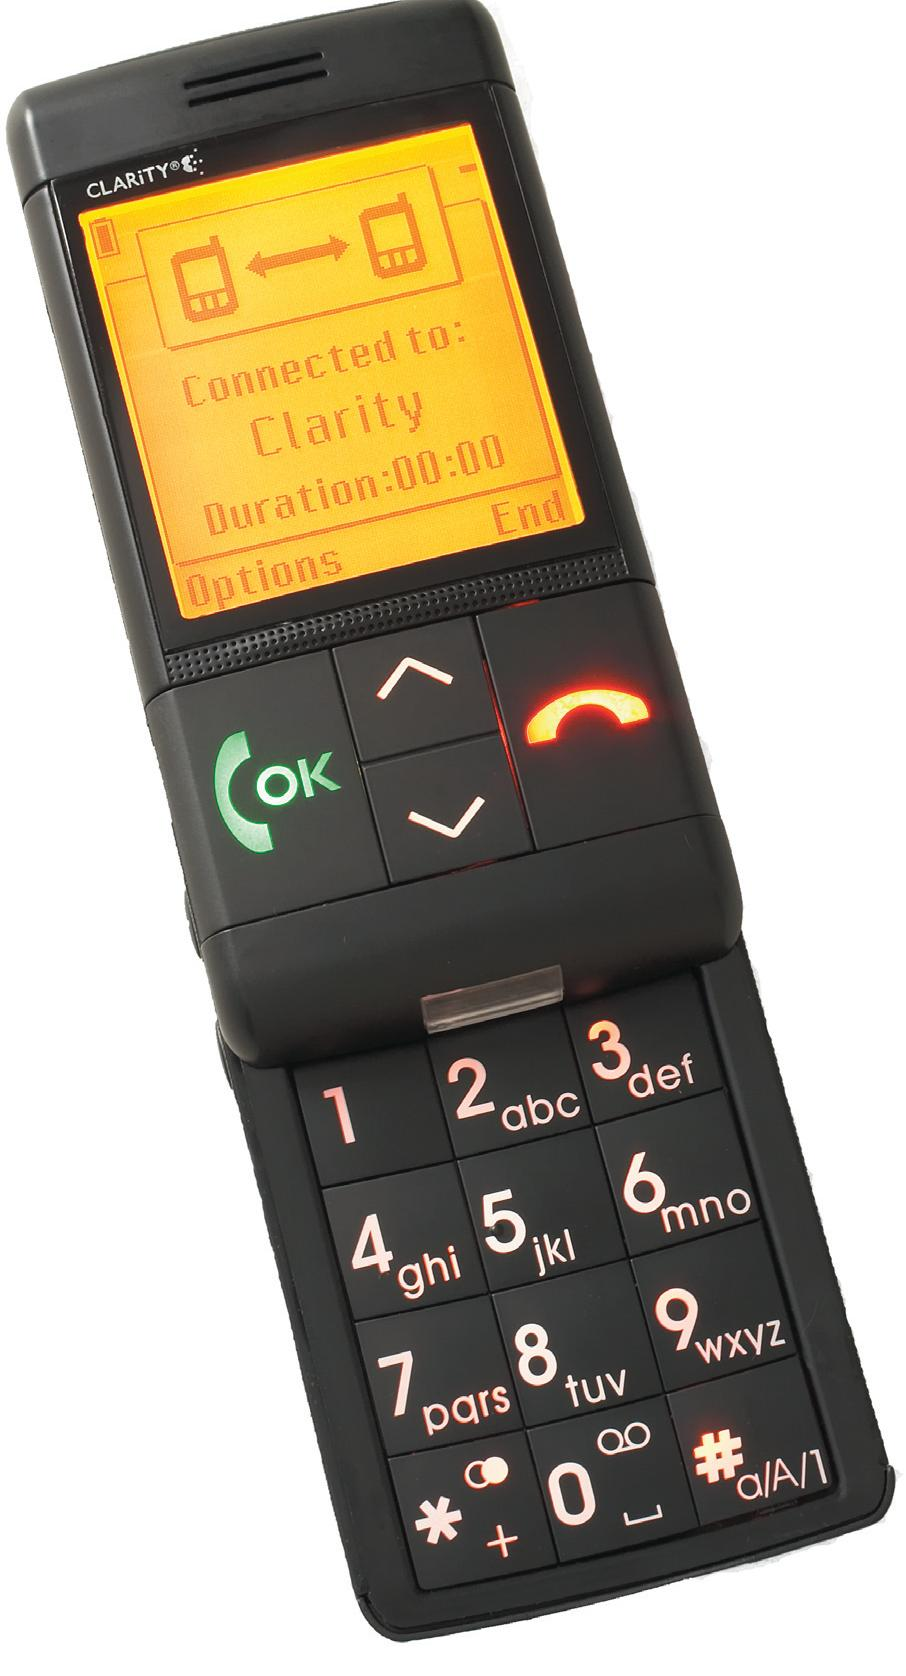 ClarityLife C900 Amplified Mobile Phone